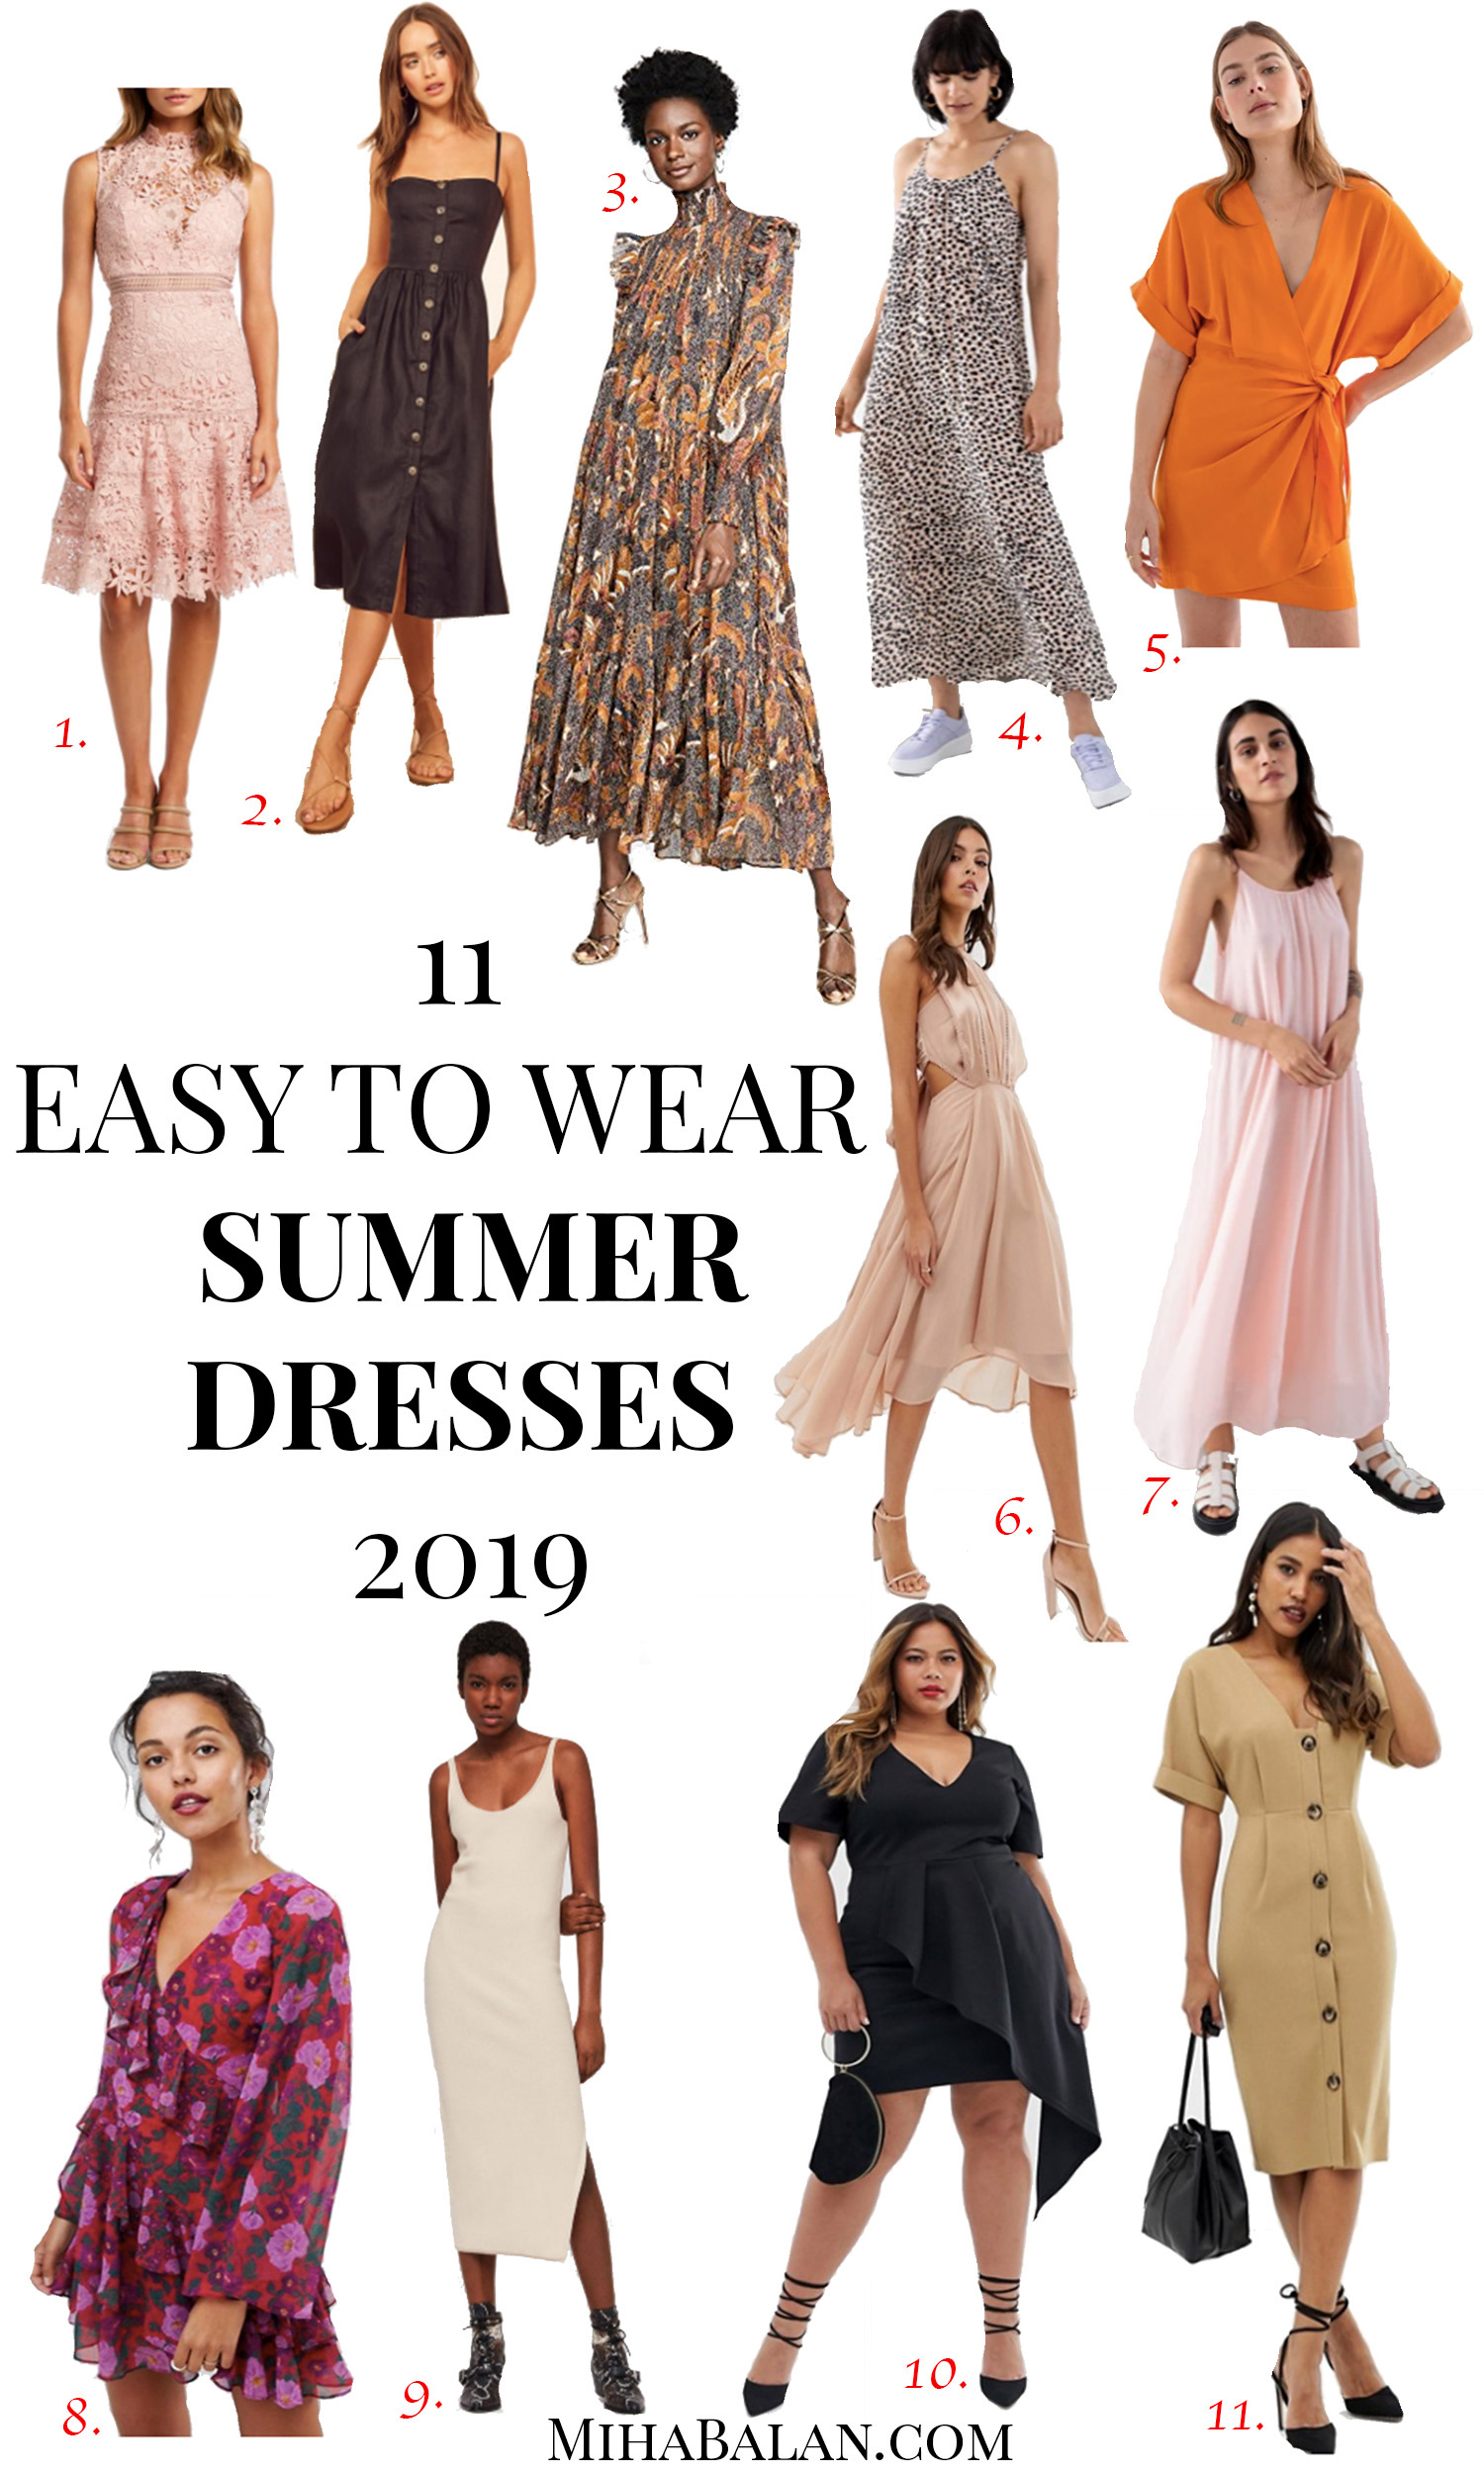 11 easy to wear summer dresses 2019, summer outfits, maxi dresses, dresses for occasions